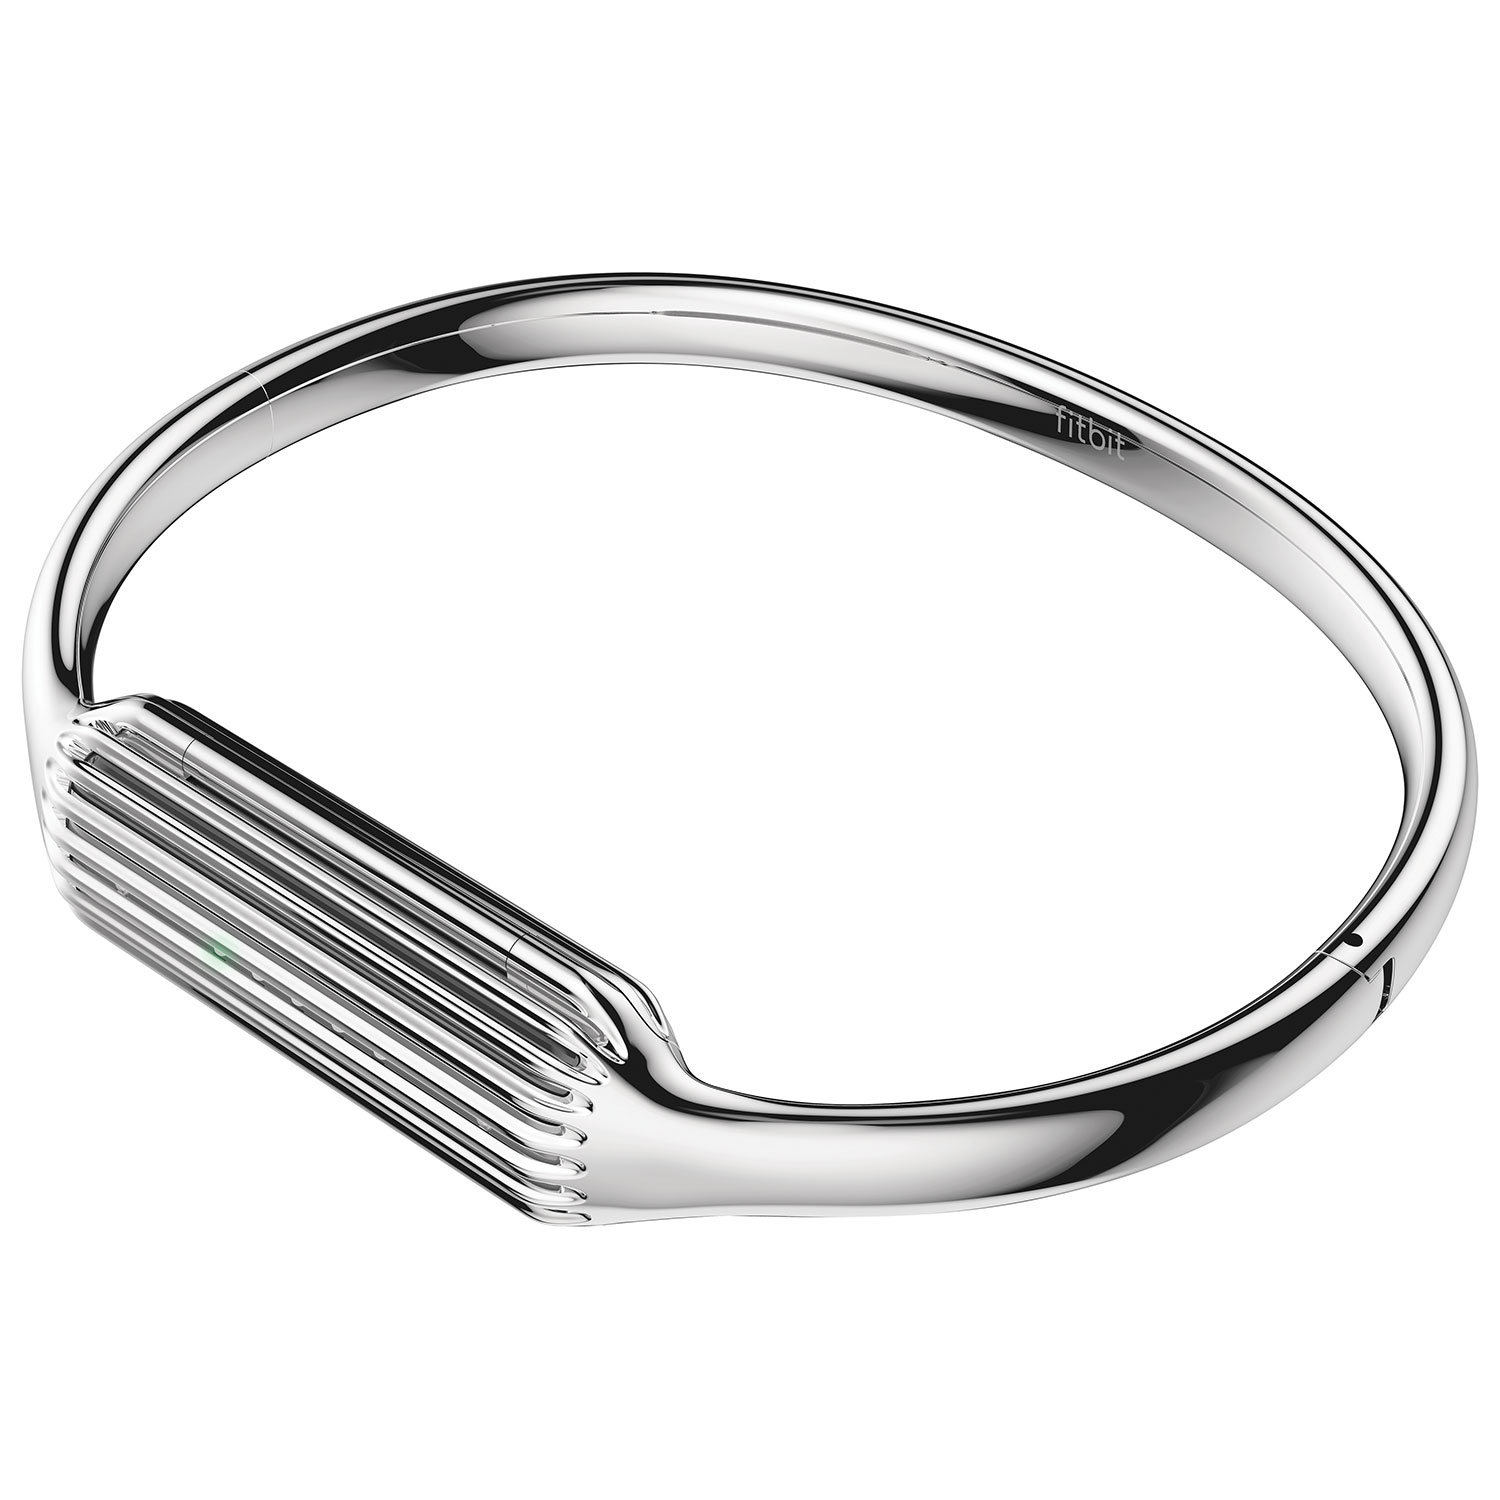 cancel scales all chunky pictures bangle bracelets store bracelet bangles for large display women silver